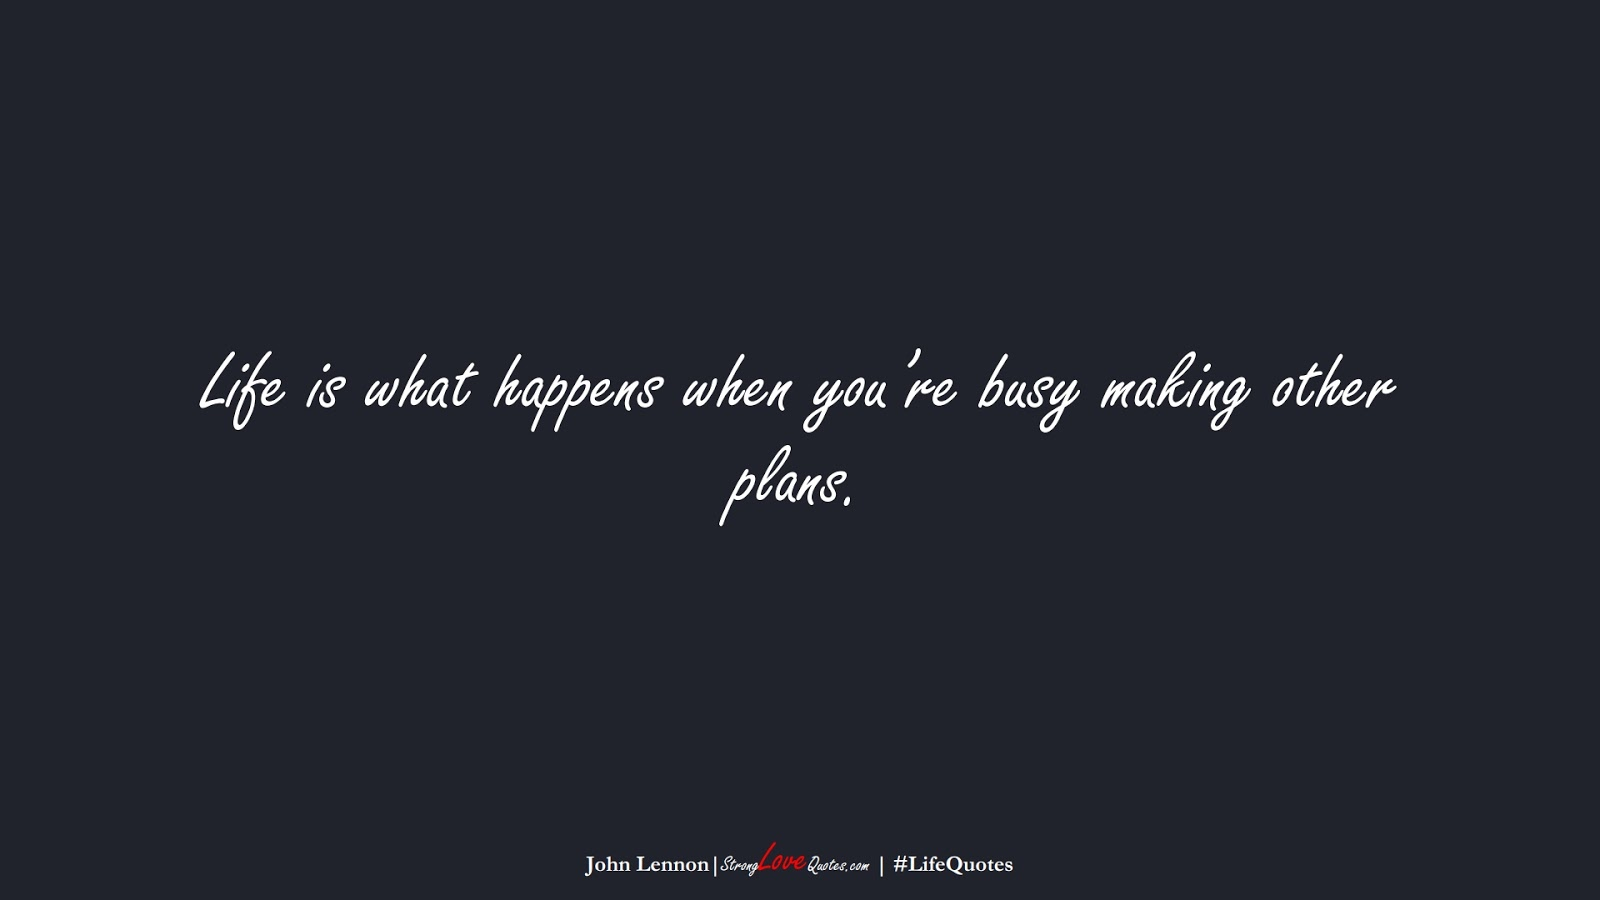 Life is what happens when you're busy making other plans. (John Lennon);  #LifeQuotes